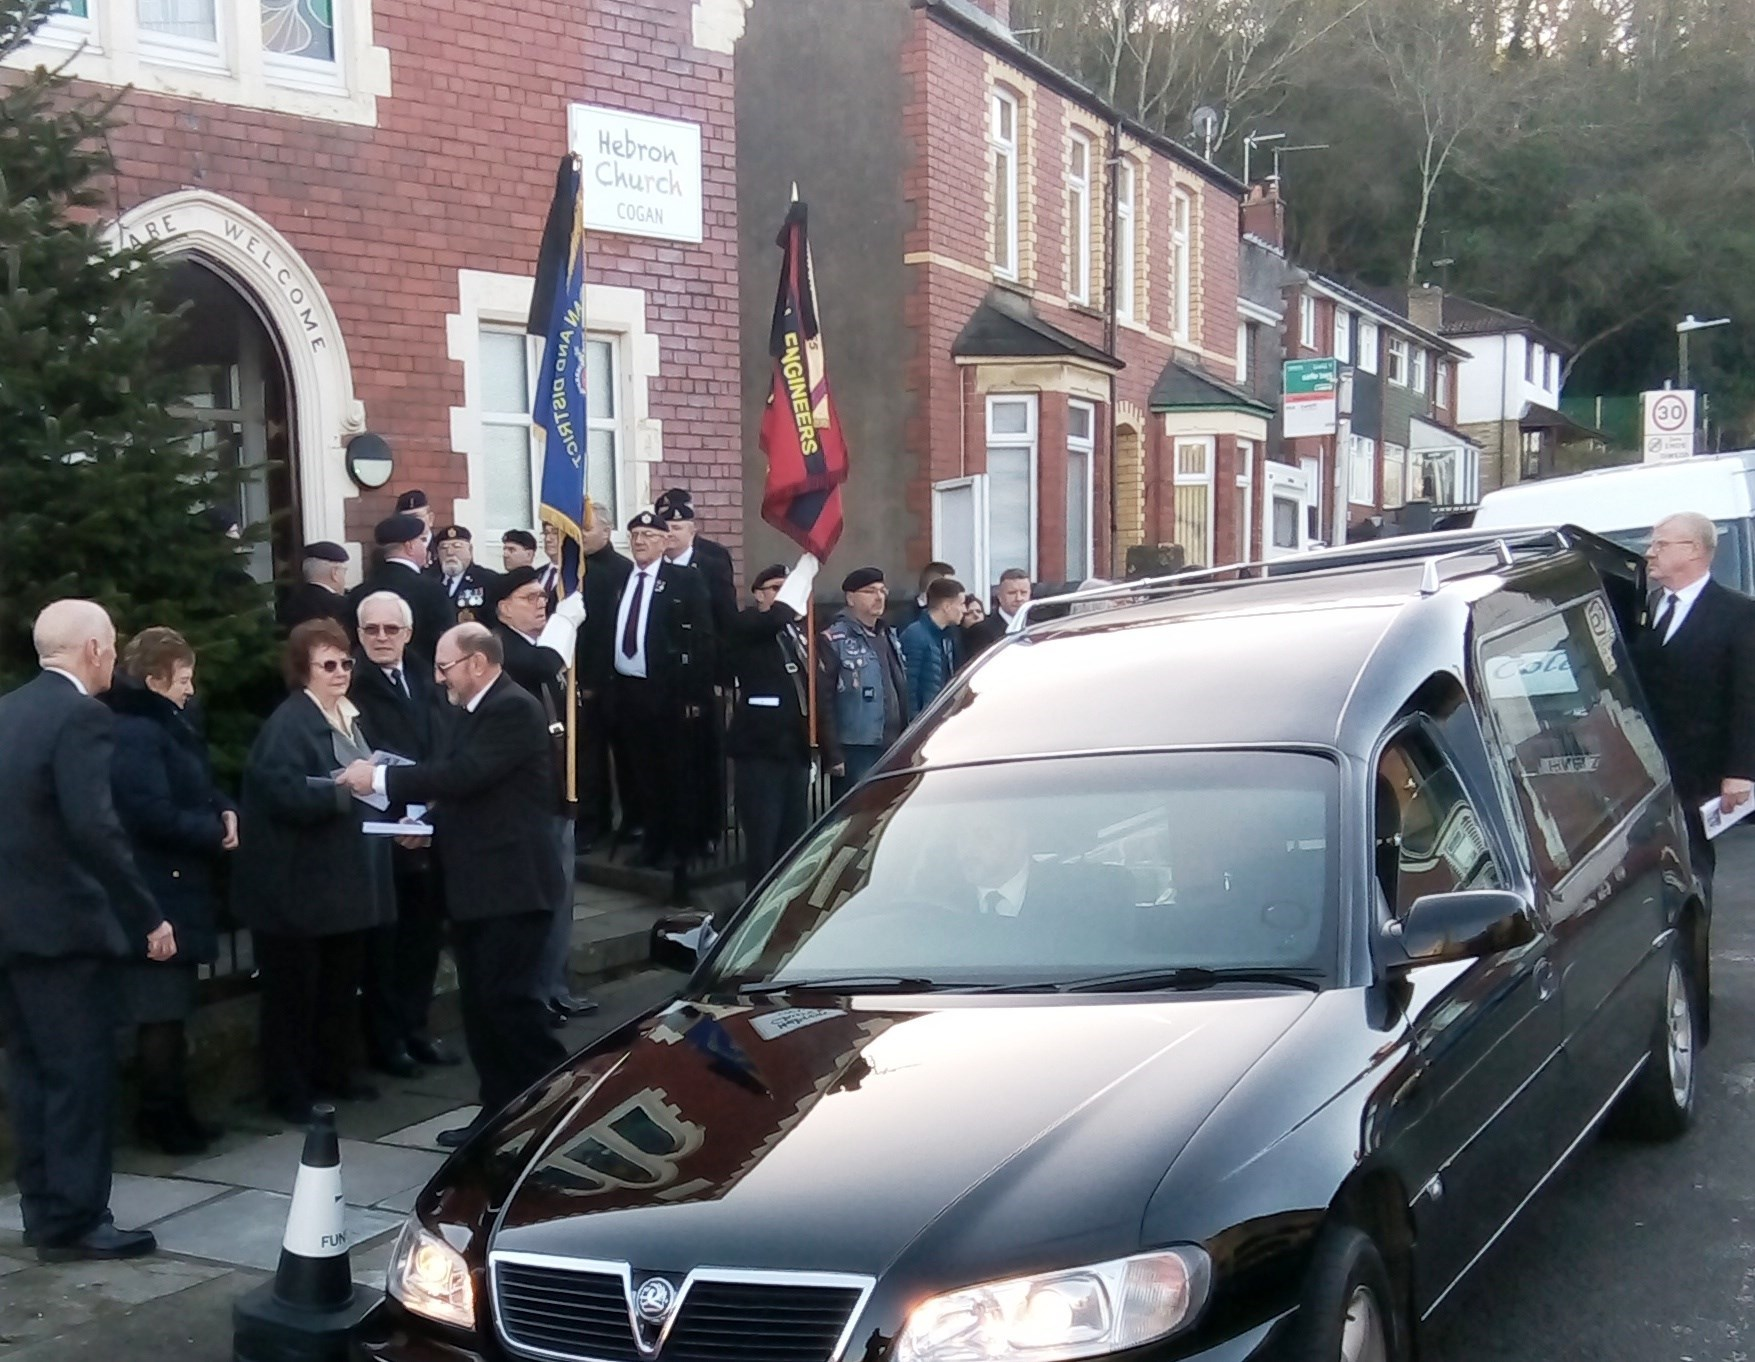 Standard bearers and vets line up either side of the entrance to the church - John's funeral today.